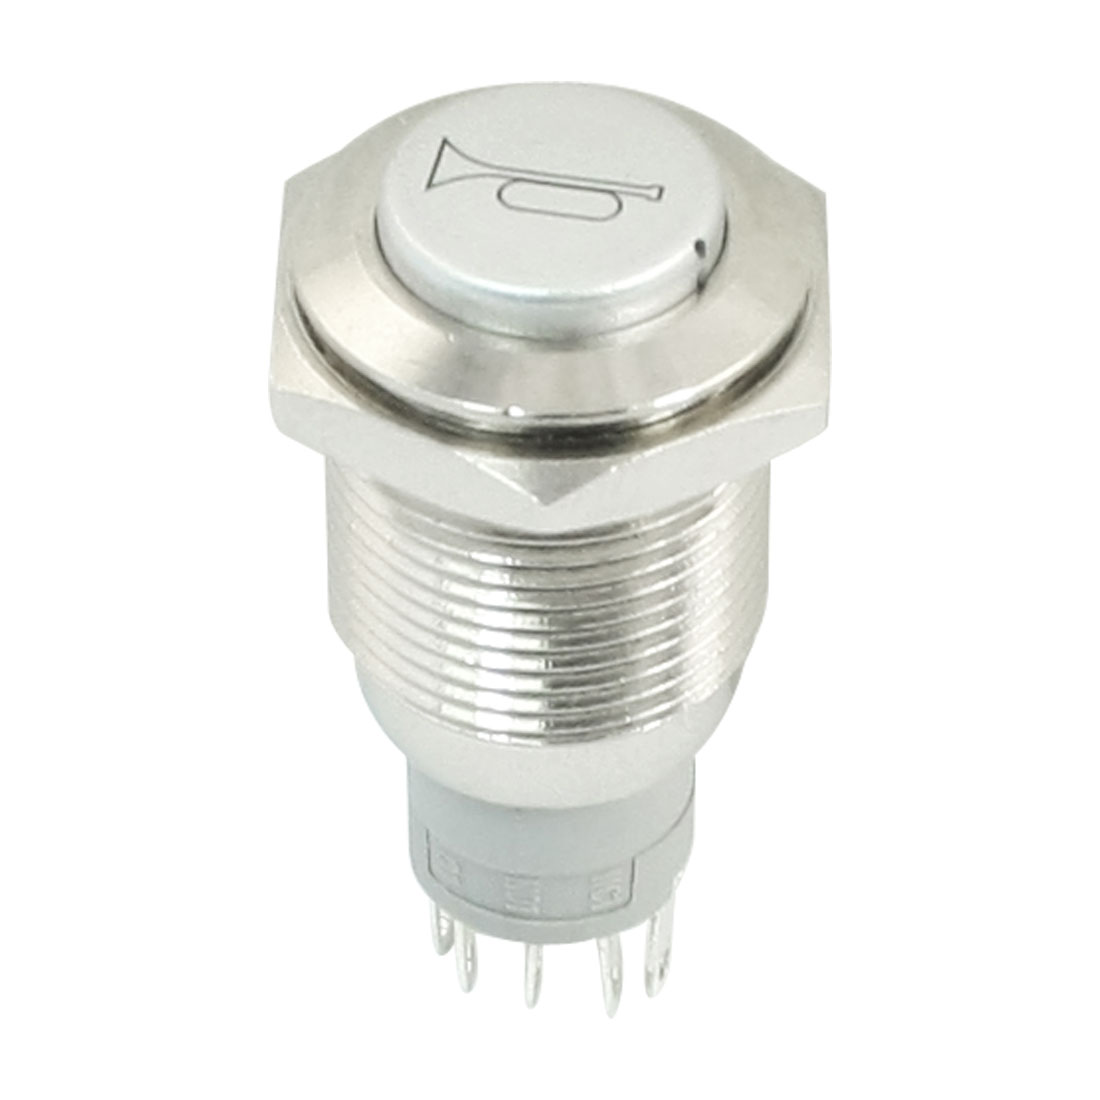 DC 12V Red Indicative LED High Flat Head SPDT 16mm Thread Momentary Metal Pushbutton Switch for Car Horn